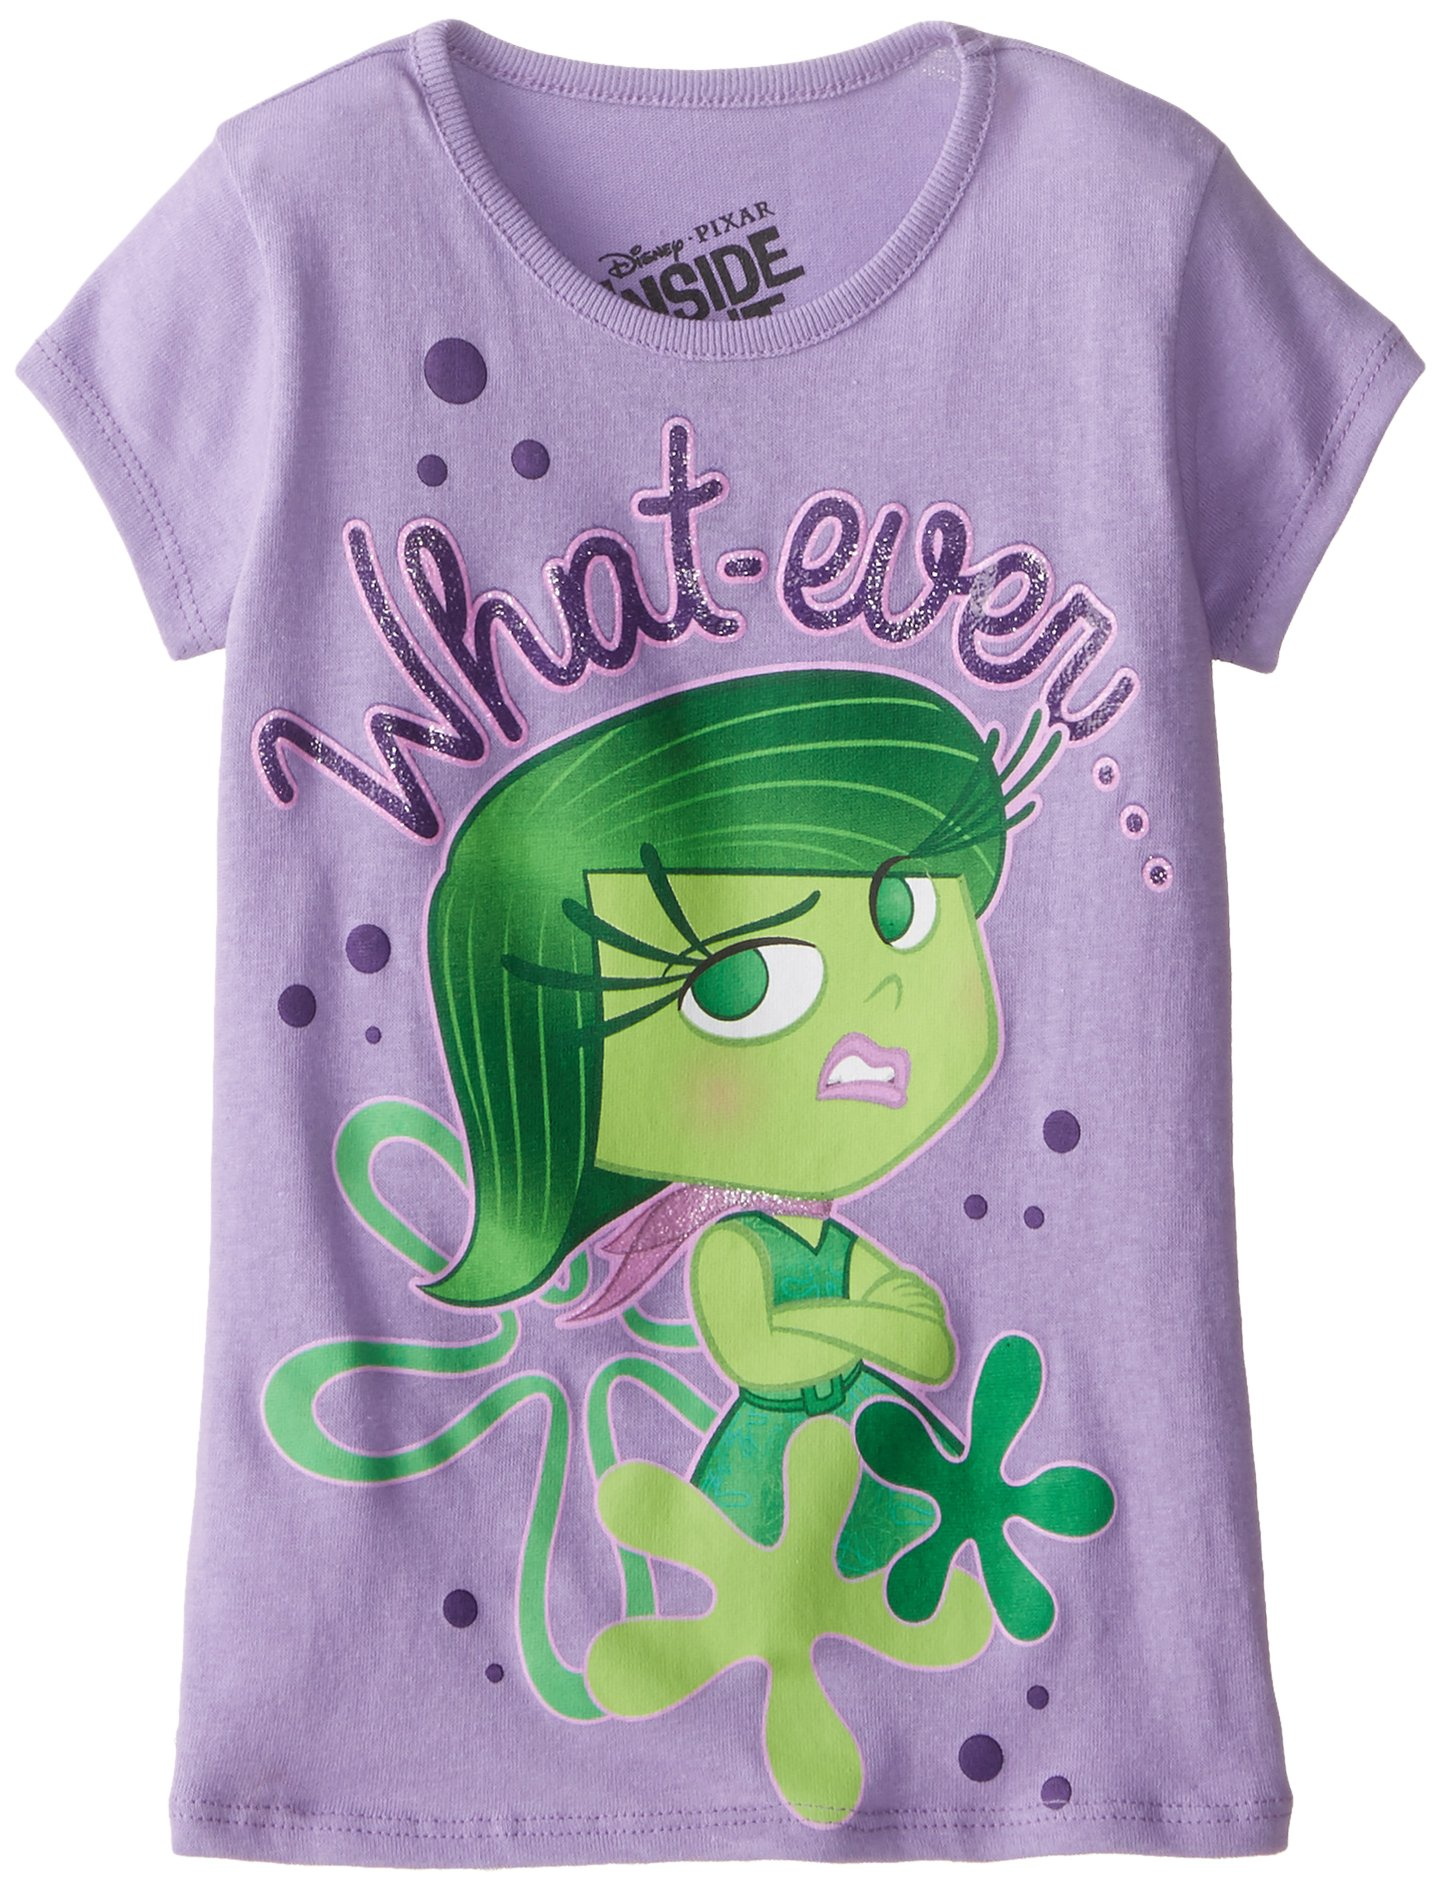 """Extreme Concepts Little Girls' Inside Out Disgust Short Sleeve Tee - """"Whatever"""" in purple"""